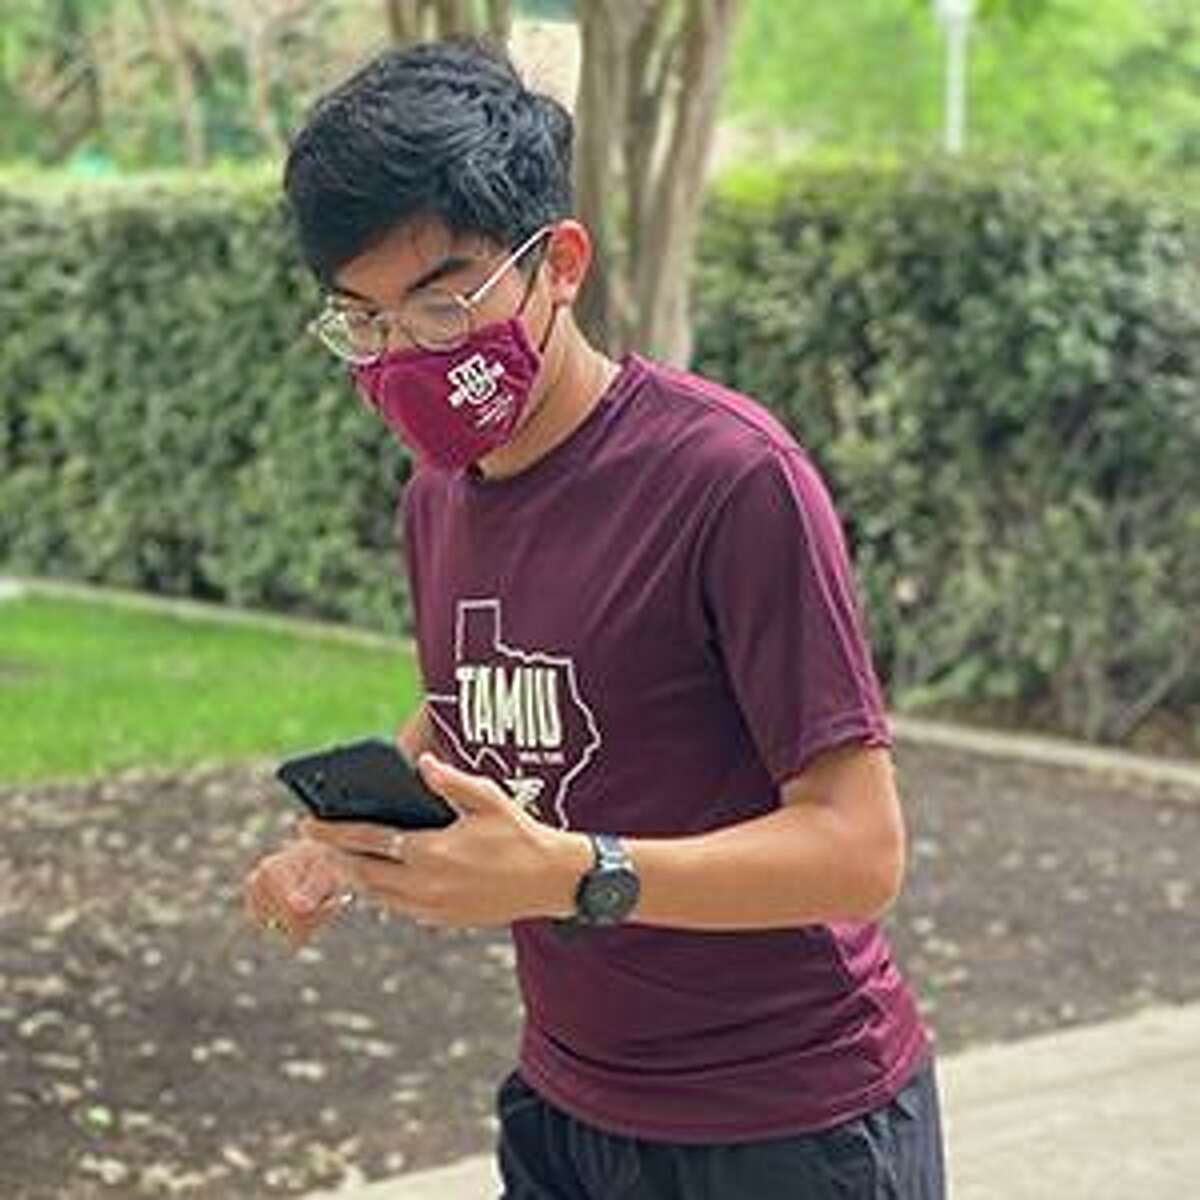 TAMIU will hold a virtual 5K on Saturday inviting locals to participate in the annual The Big Event.